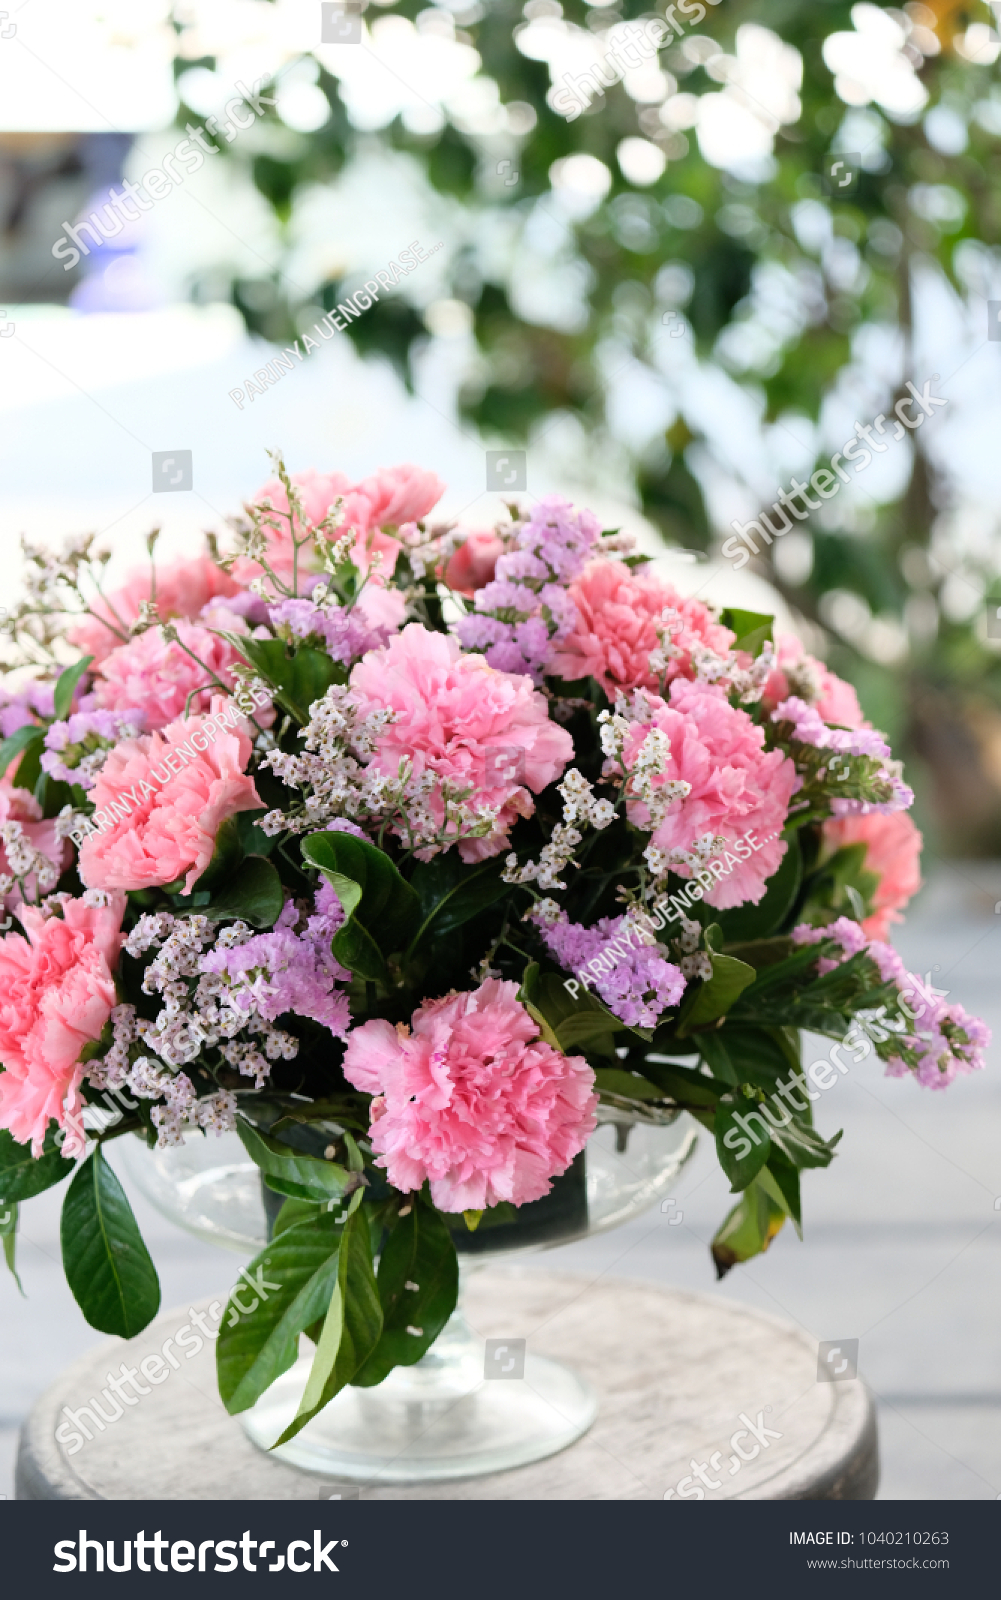 Bouquet Of Pink Carnations Flowers And Green Leaves In Glasses Vase